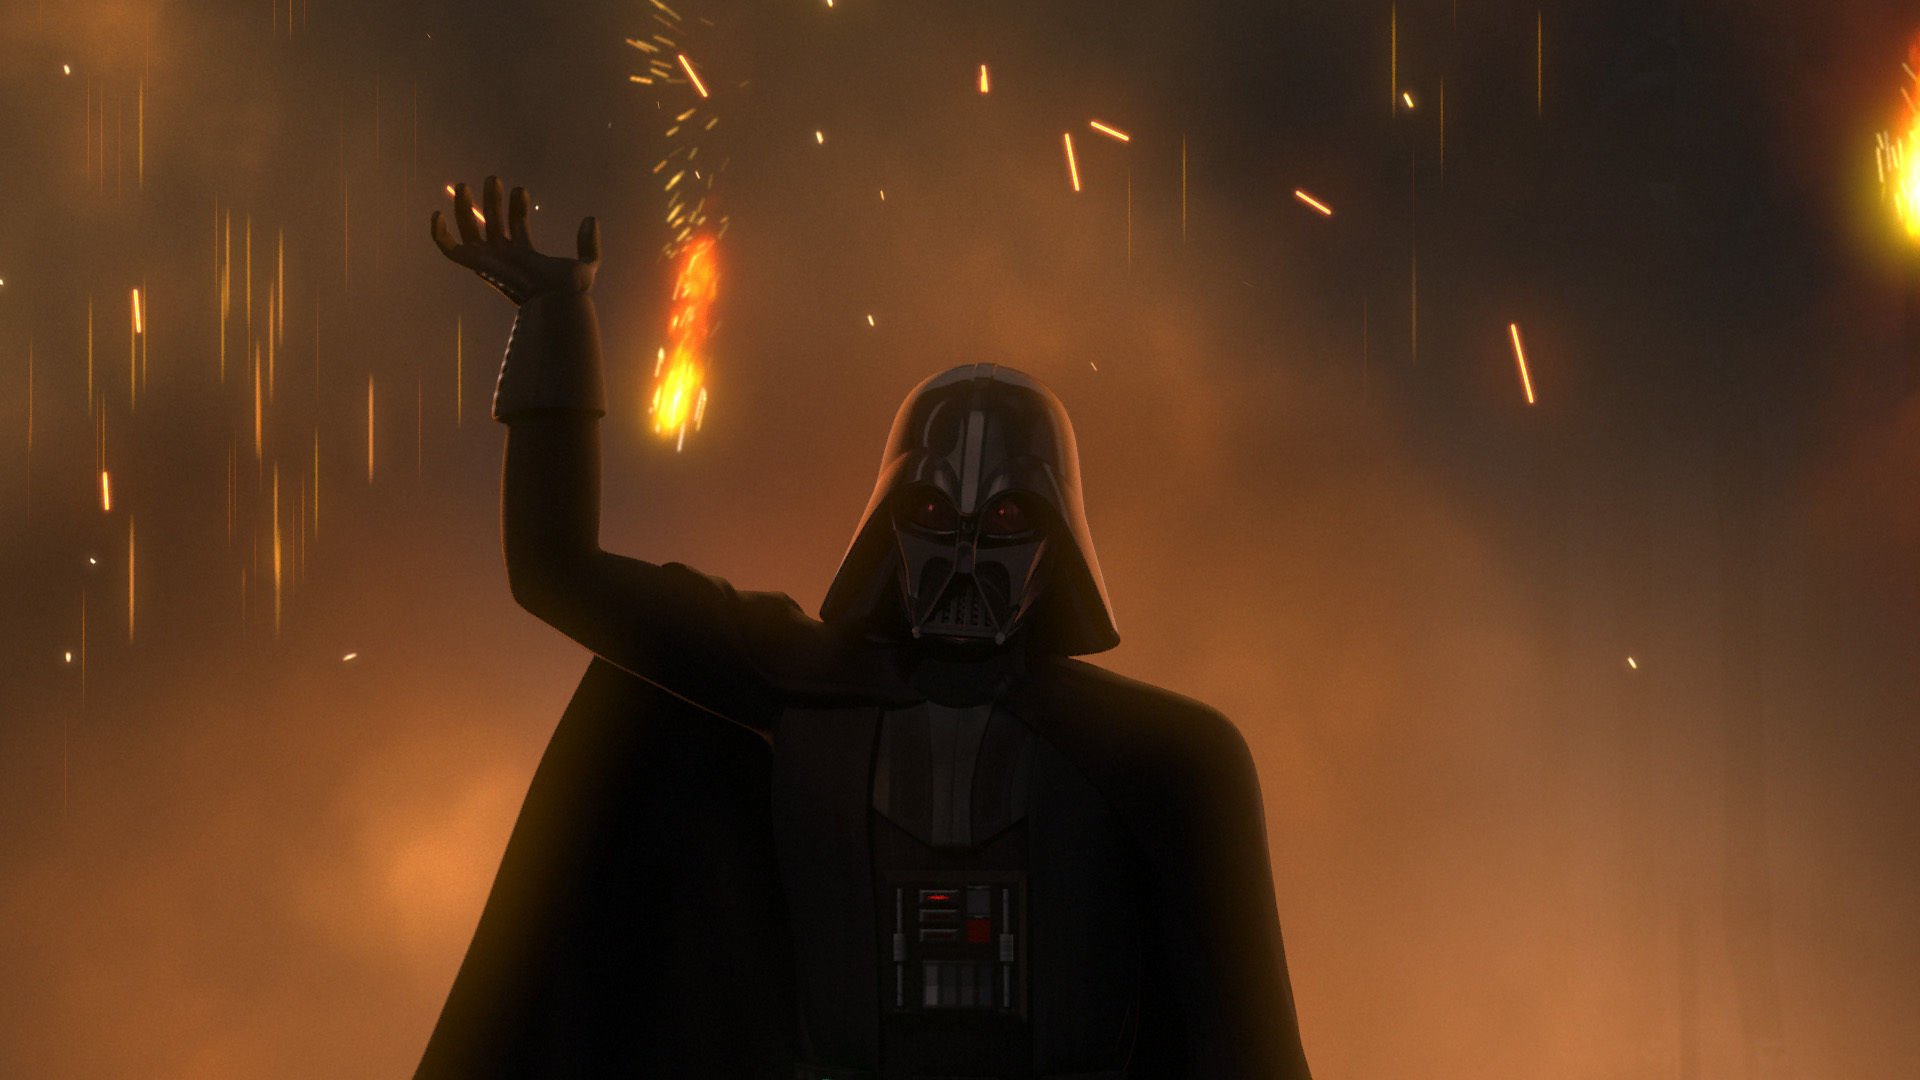 Séries TV - Star Wars Rebels  Darth Vader Fond d'écran